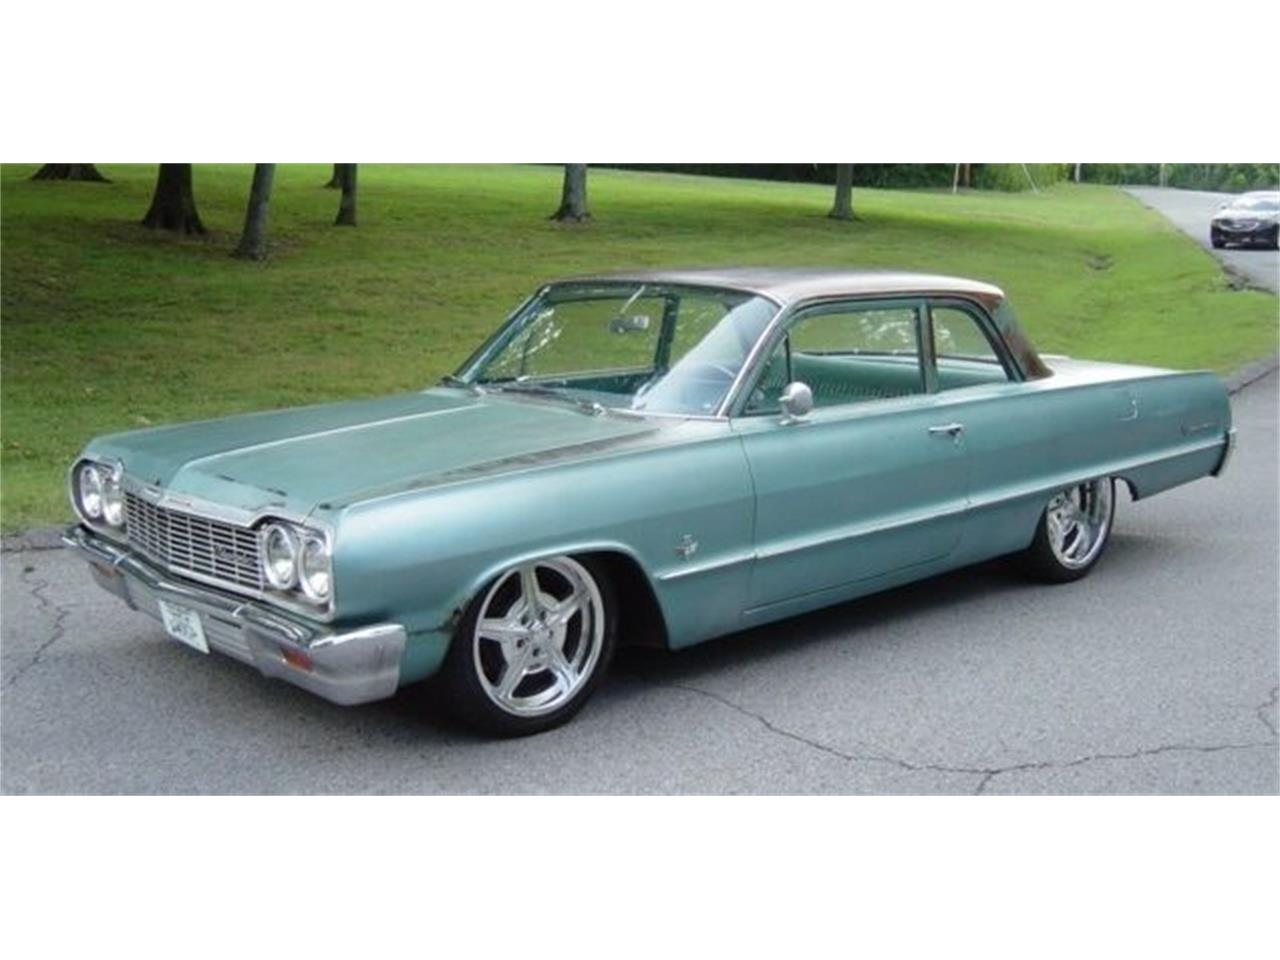 1964 Chevrolet Biscayne (CC-1258368) for sale in Hendersonville, Tennessee